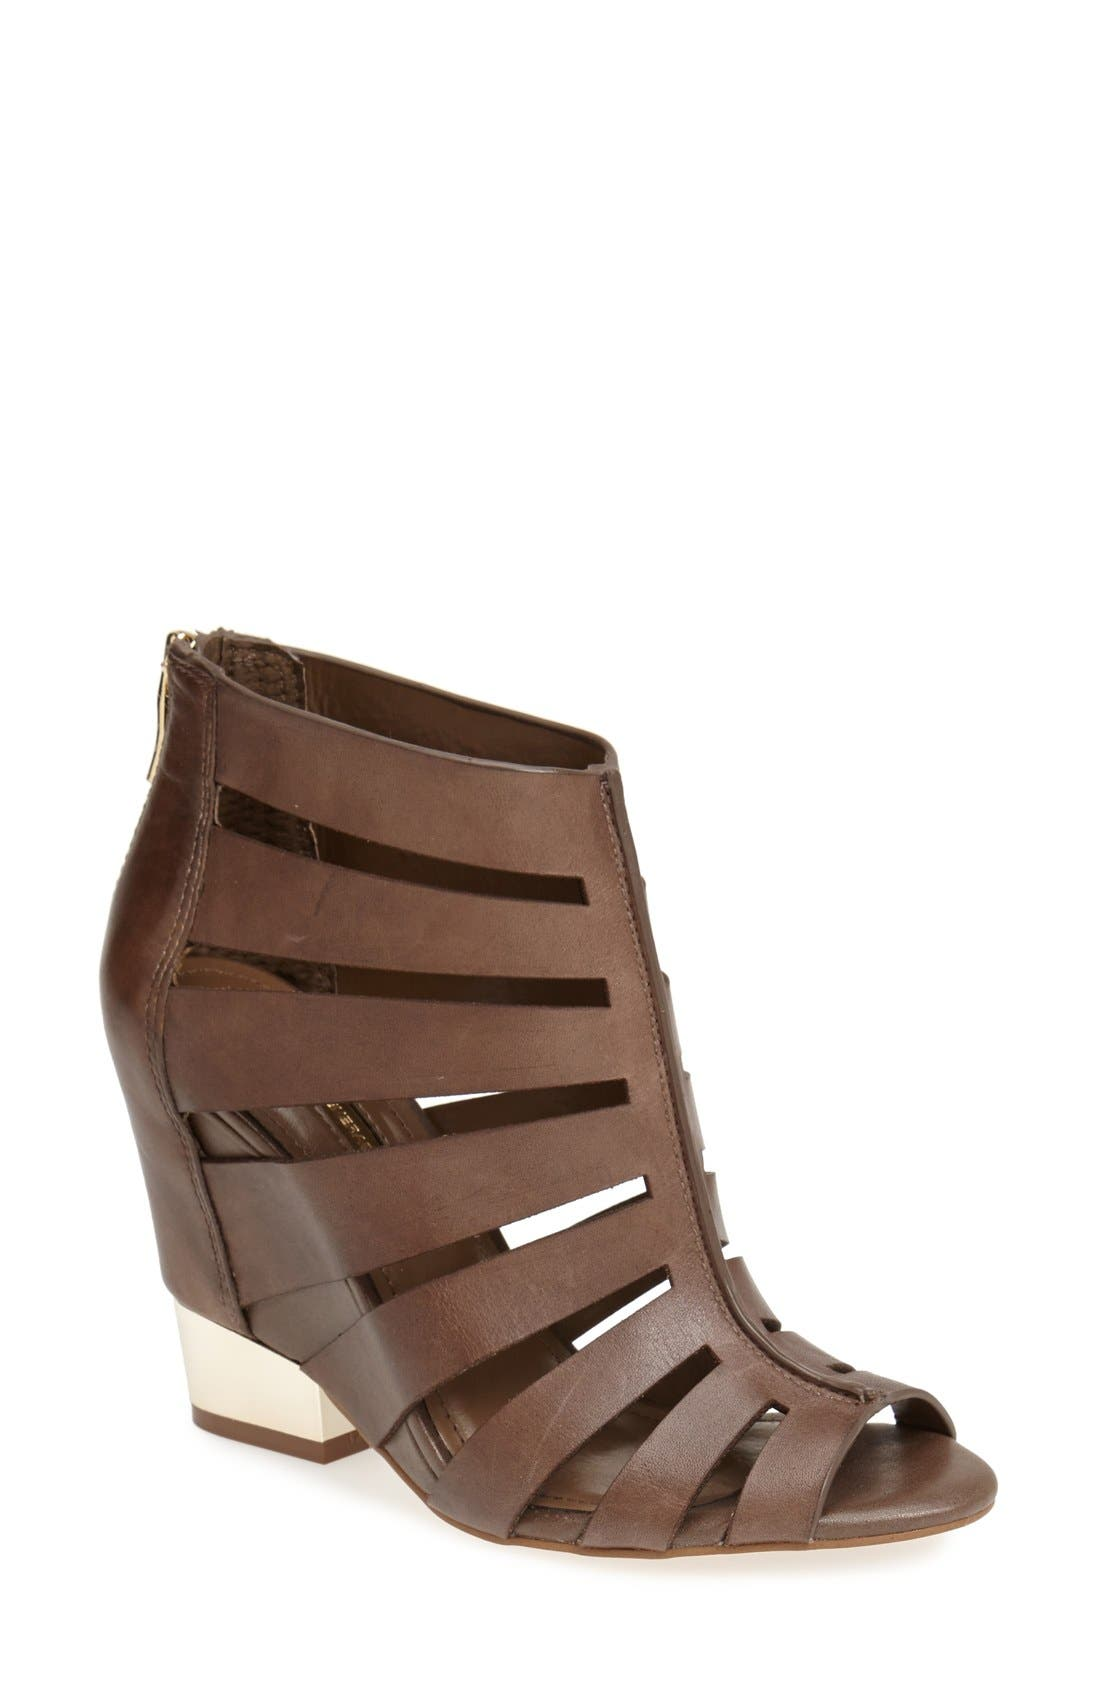 Alternate Image 1 Selected - BCBGeneration 'Charlie' Demi Wedge Bootie (Women)